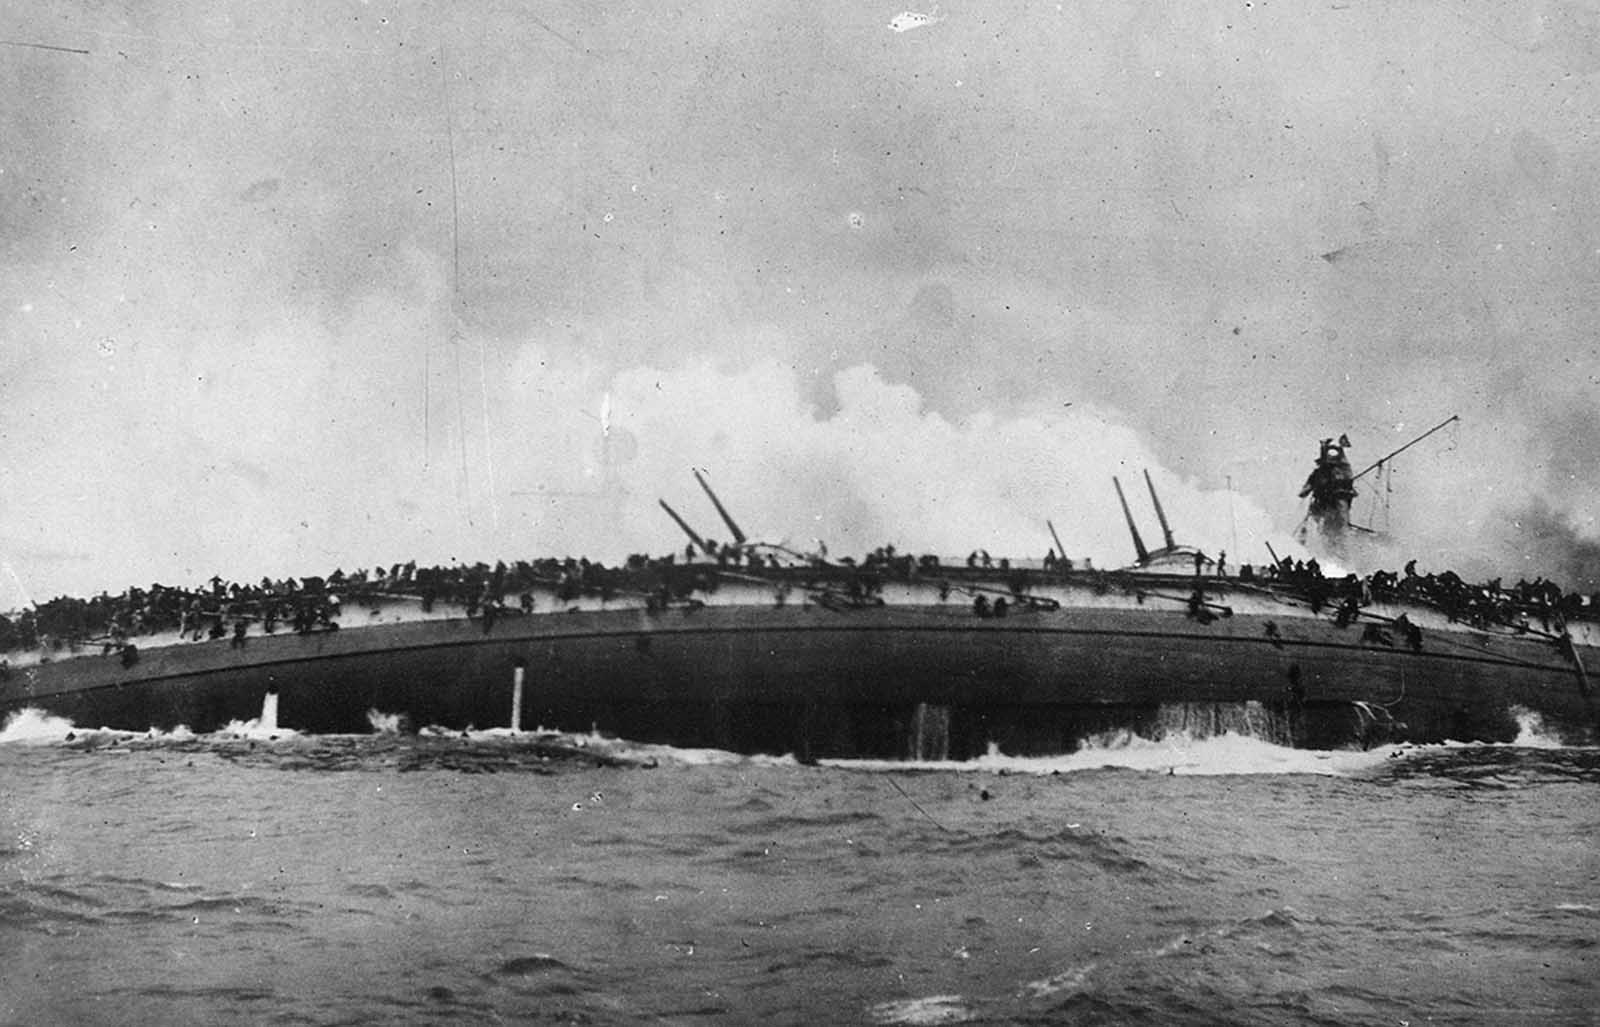 Sinking of the German Cruiser SMS Bluecher, in the Battle of Dogger Bank, in the North Sea, between German and British dreadnoughts, on January 24, 1915. The Bluecher sank with the loss of nearly a thousand sailors. This photo was taken from the deck of the British Cruiser Arethusia.